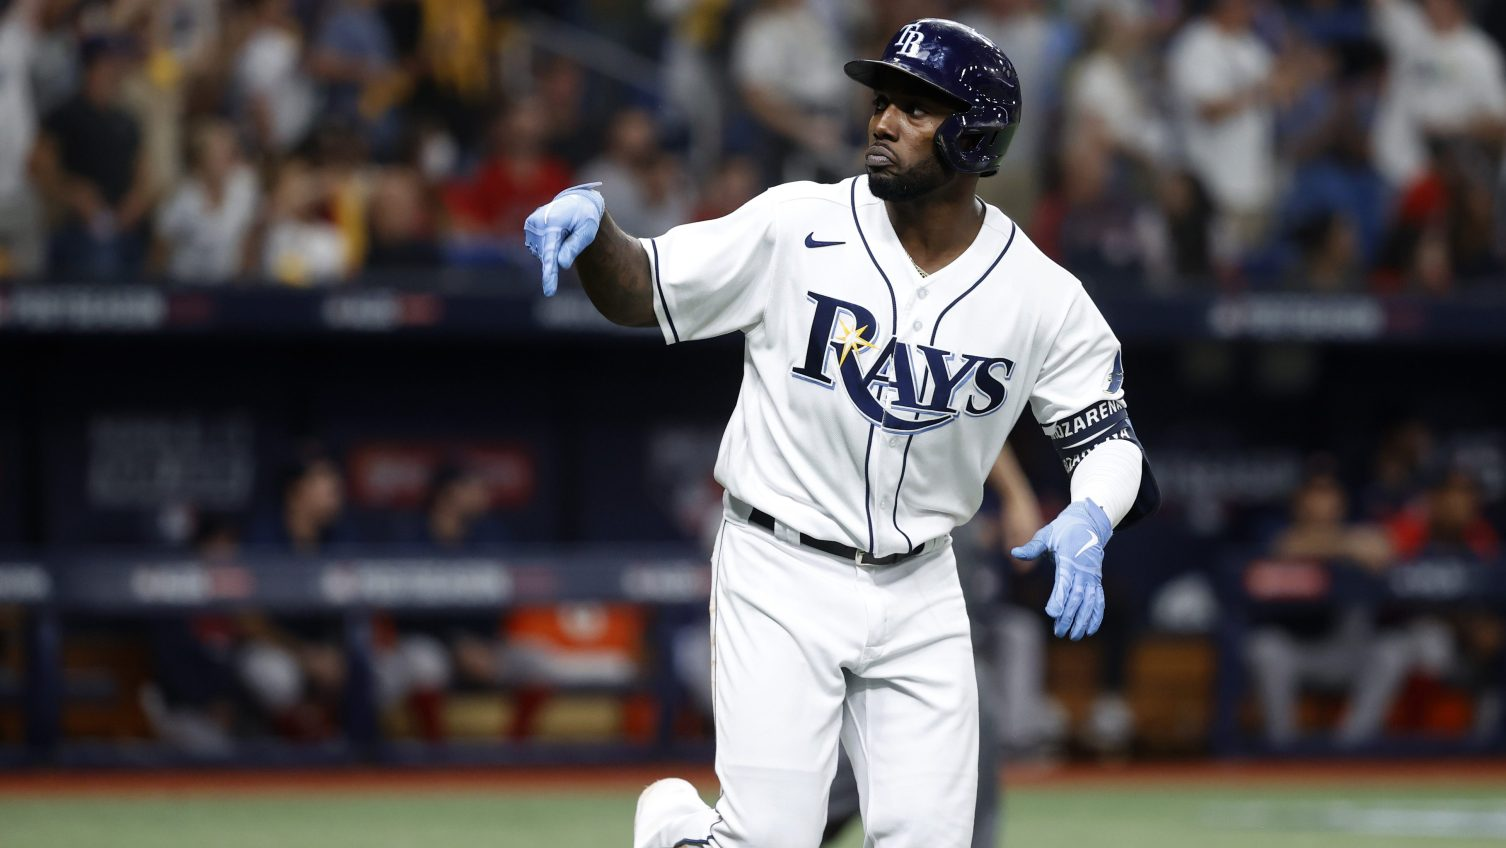 Arozarena shines, Rays blank Red Sox 5-0 in ALDS opener